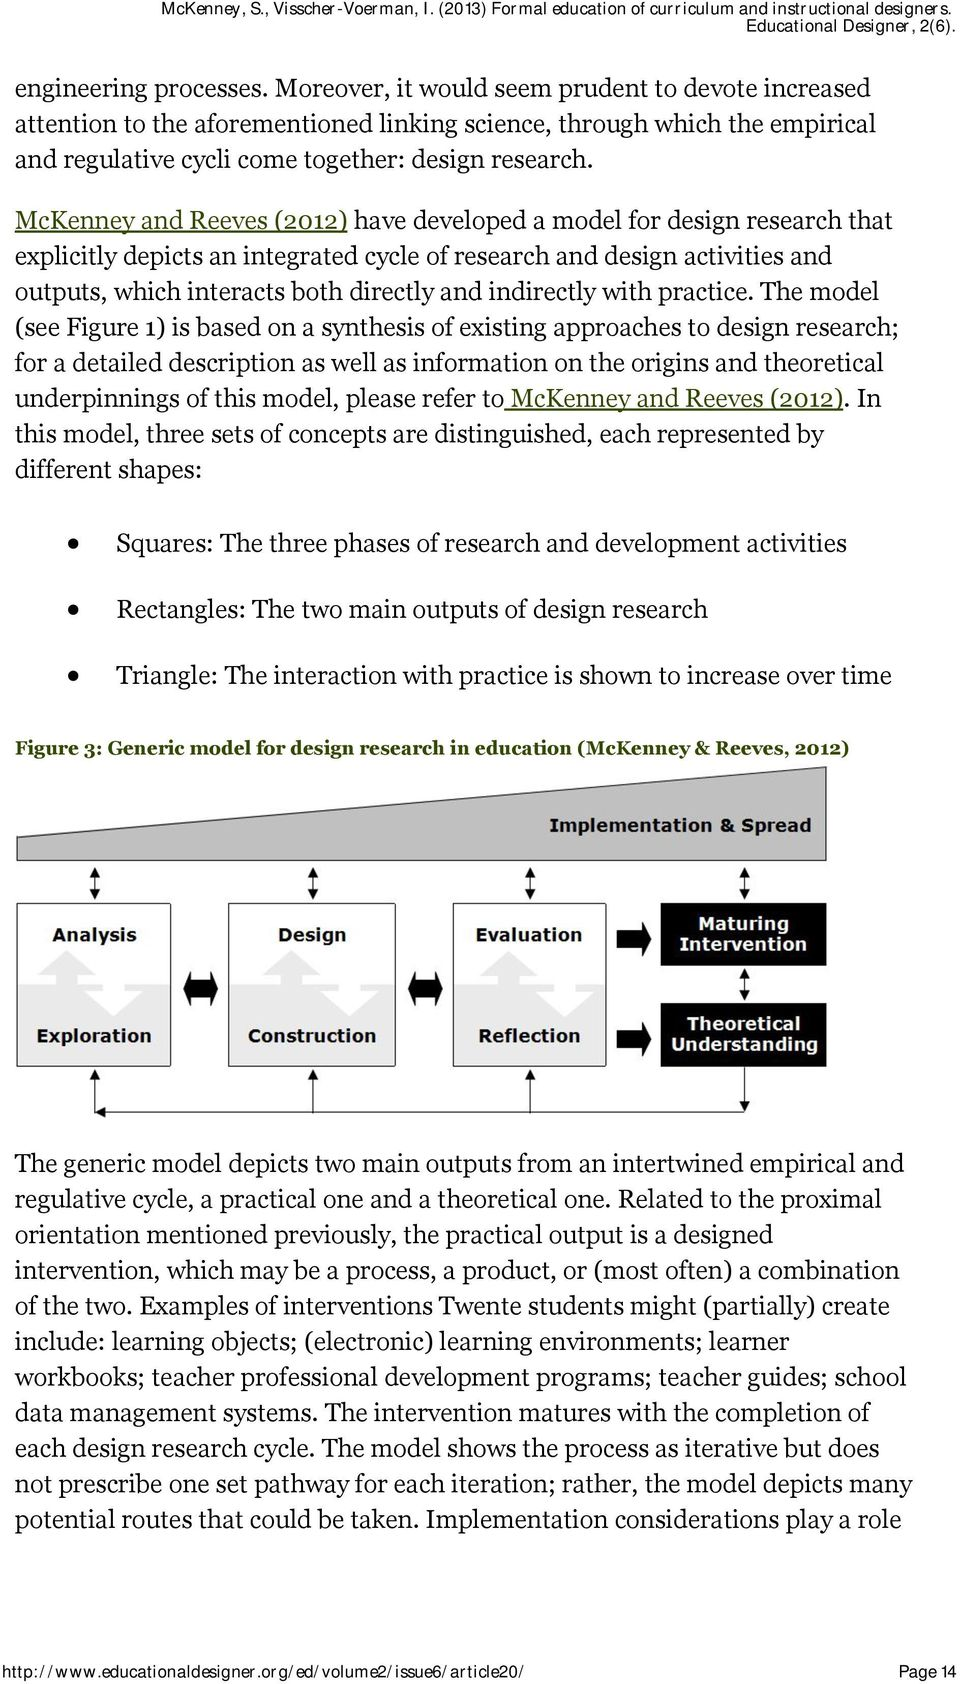 McKenney and Reeves (2012) have developed a model for design research that explicitly depicts an integrated cycle of research and design activities and outputs, which interacts both directly and